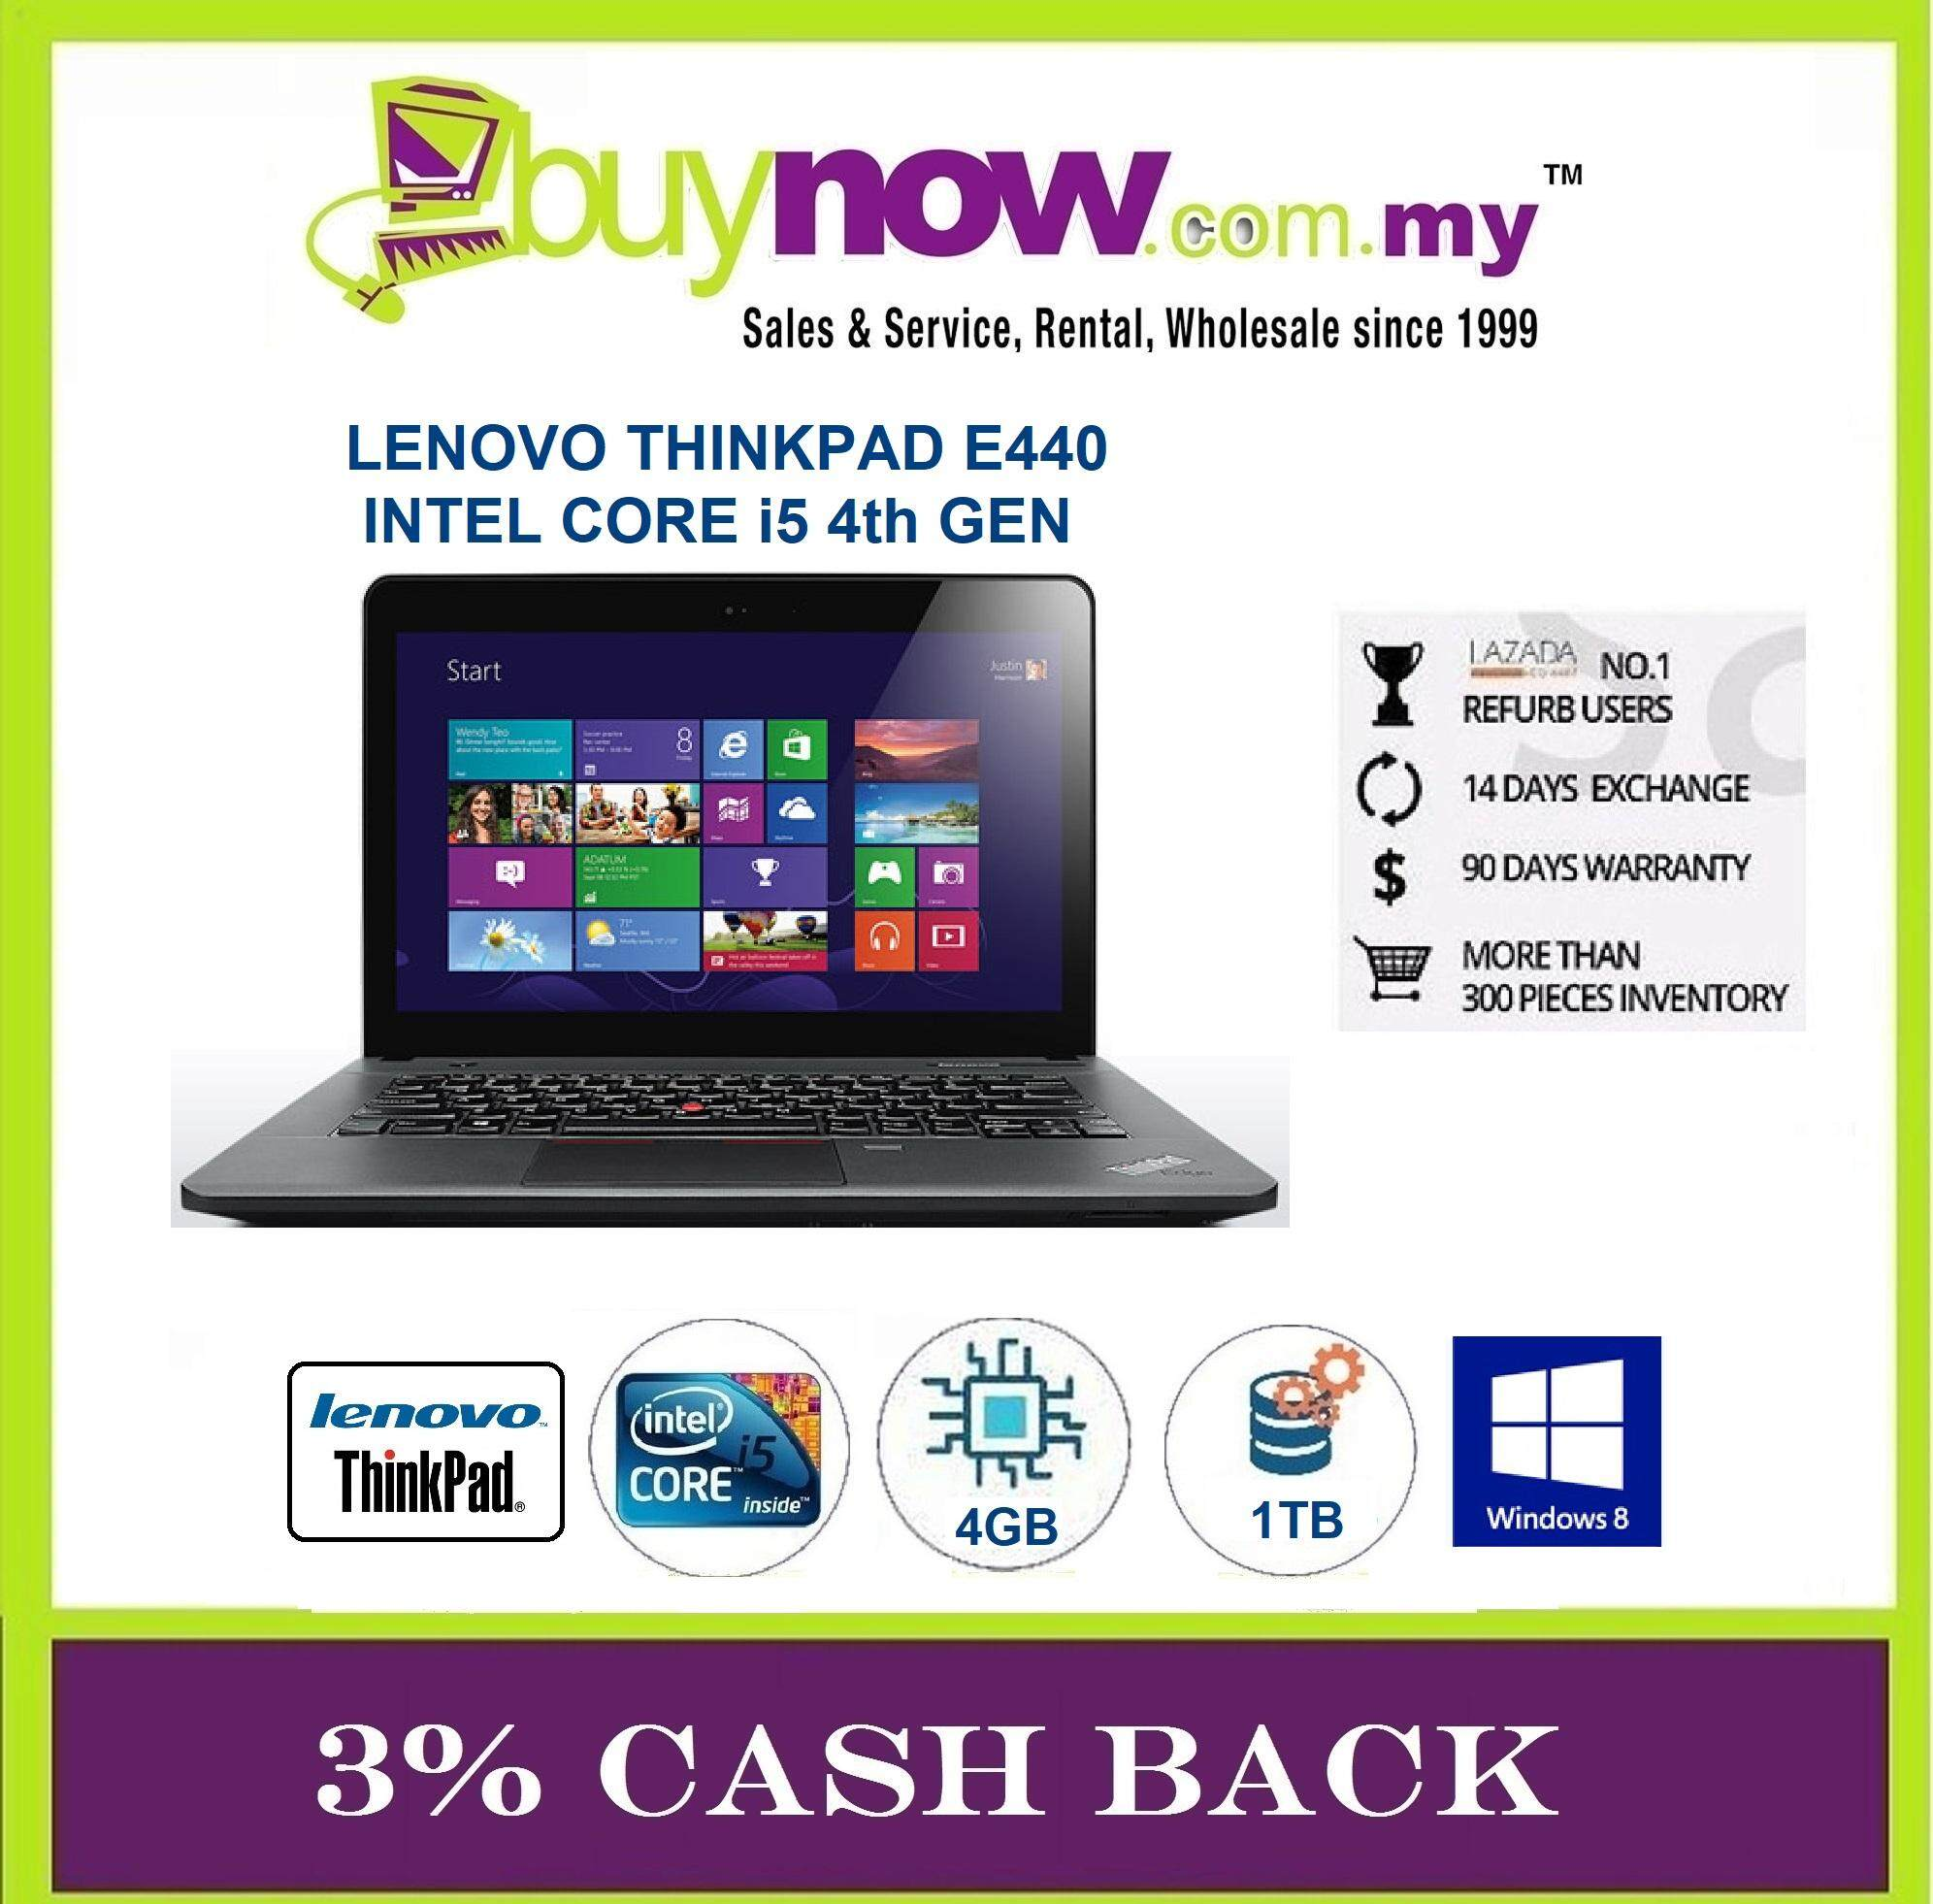 REFURBISHED NOTEBOOK LENOVO THINKPAD E440 CORE i5 /4GB RAM / 1TB HDD / WIN 8 / FREE BAG / 3% CASHBACK Malaysia